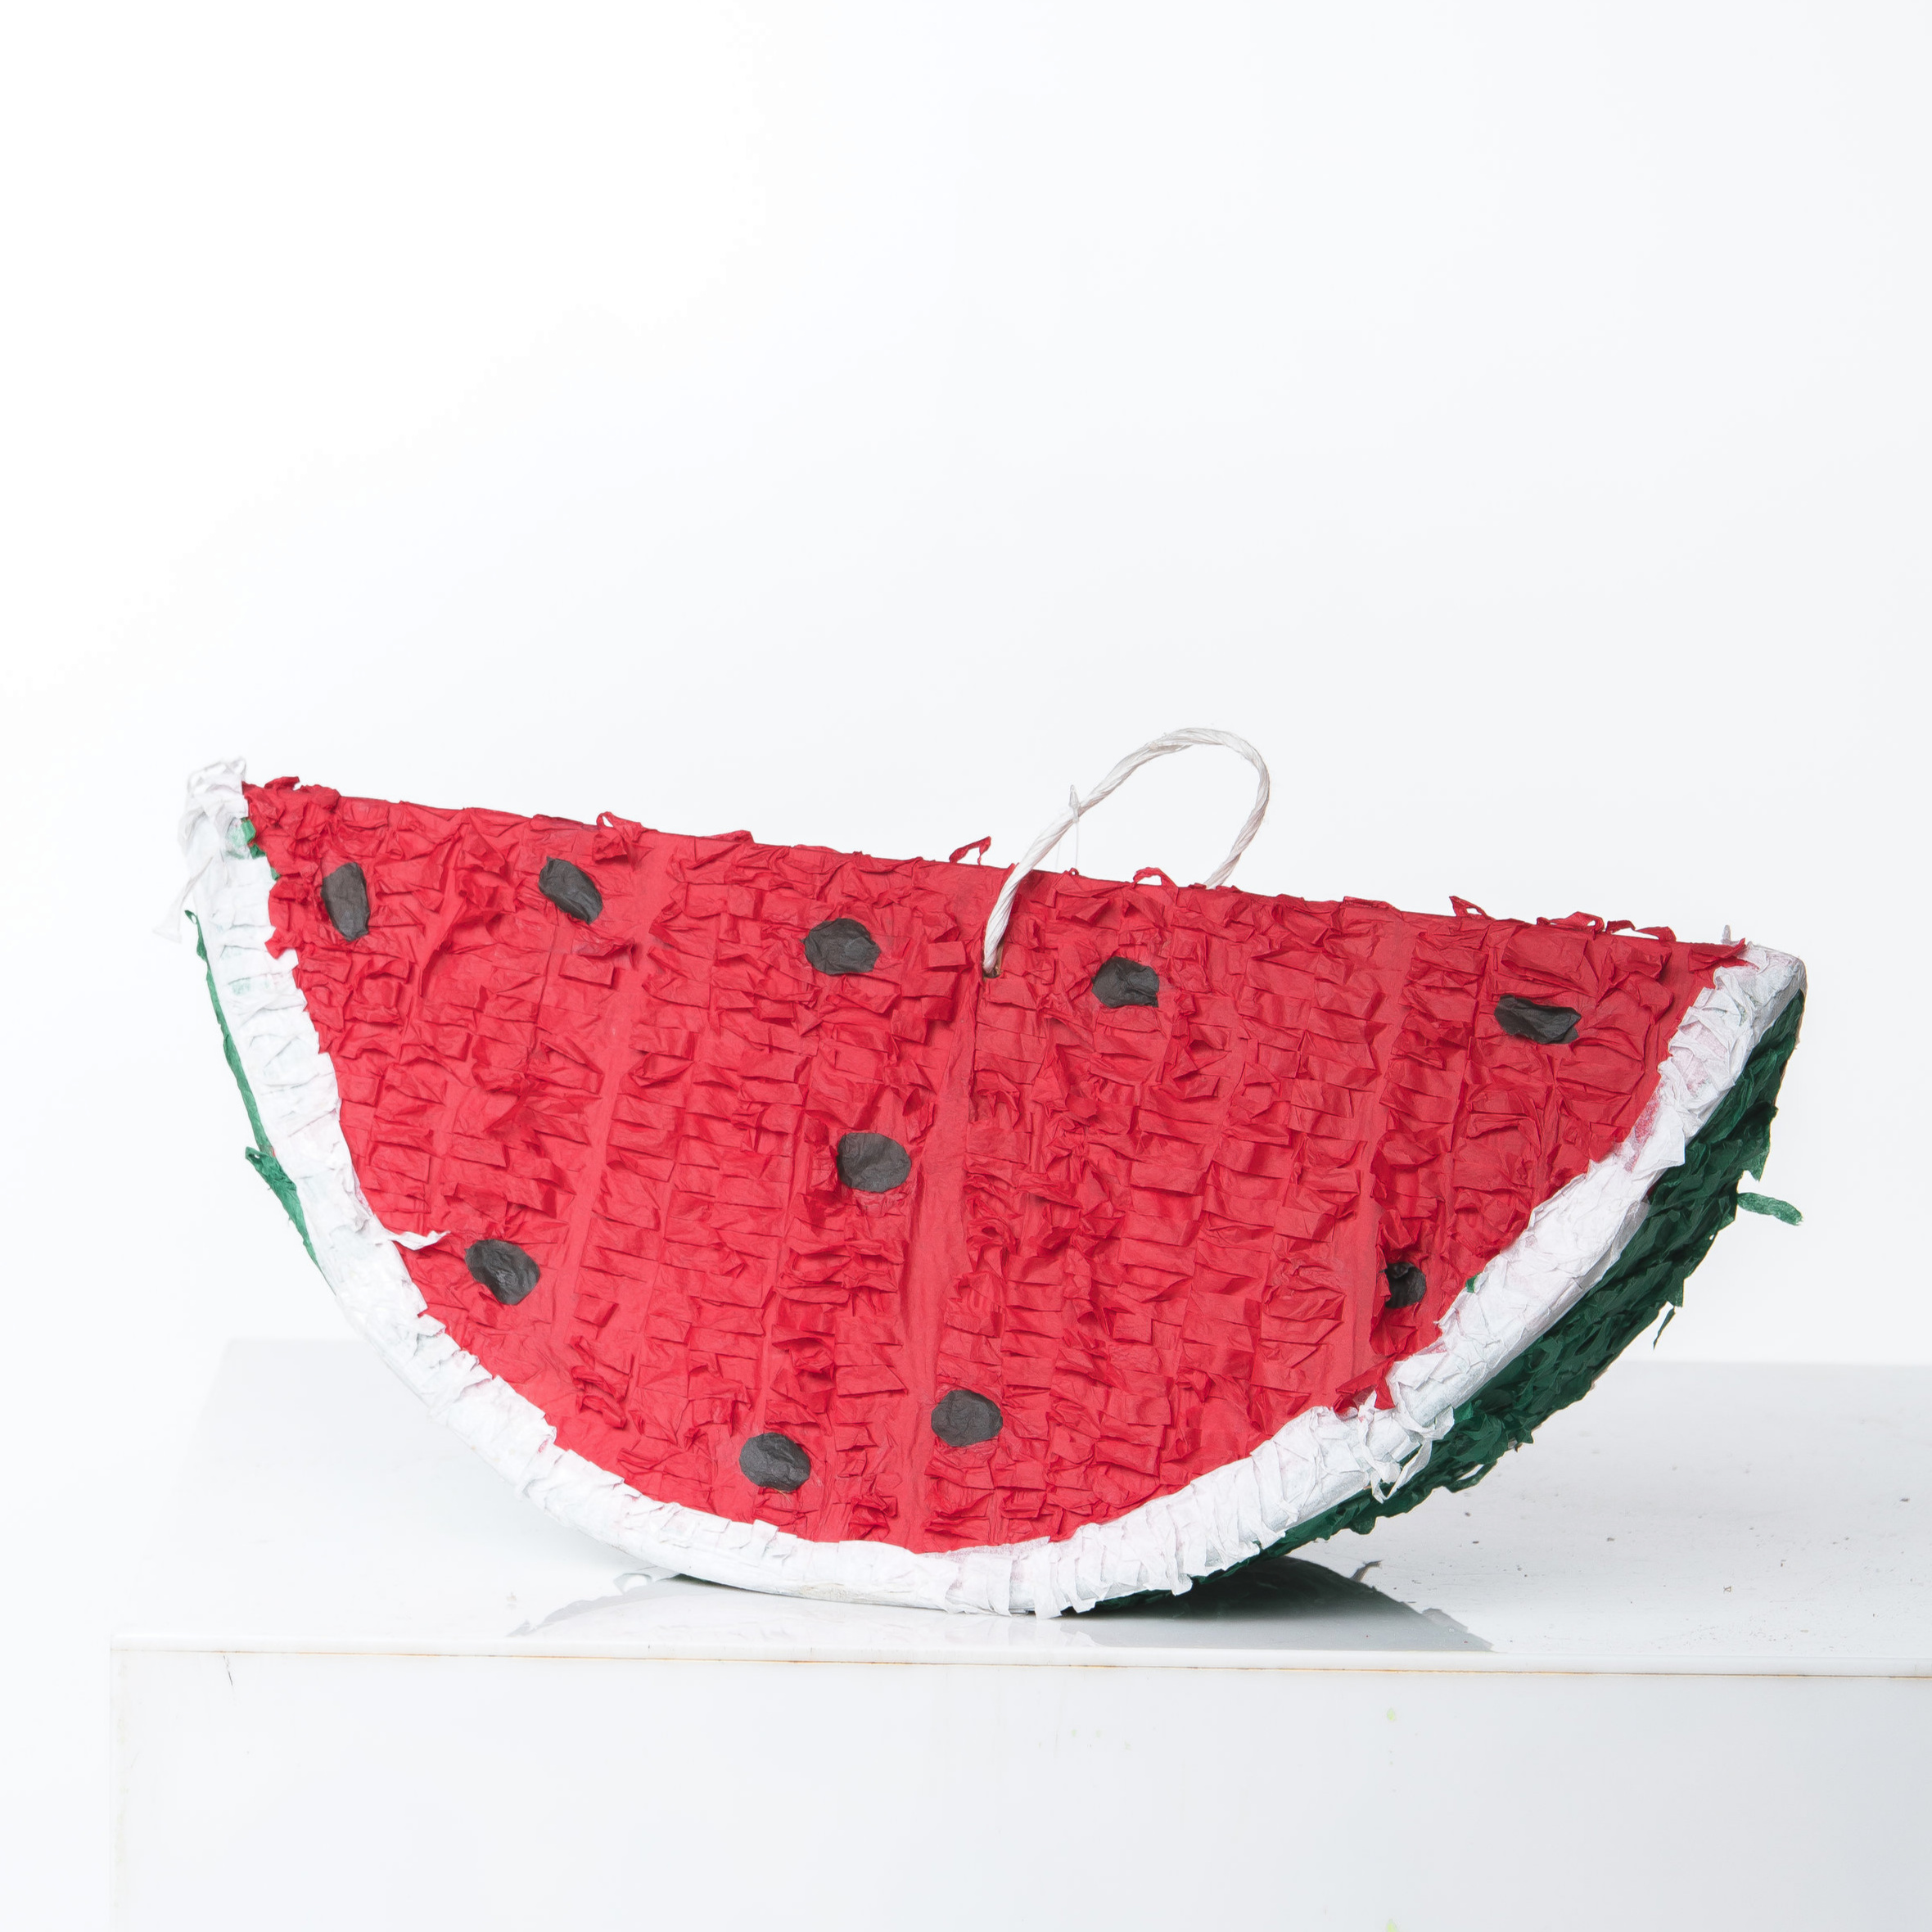 WATERMELON PINATA